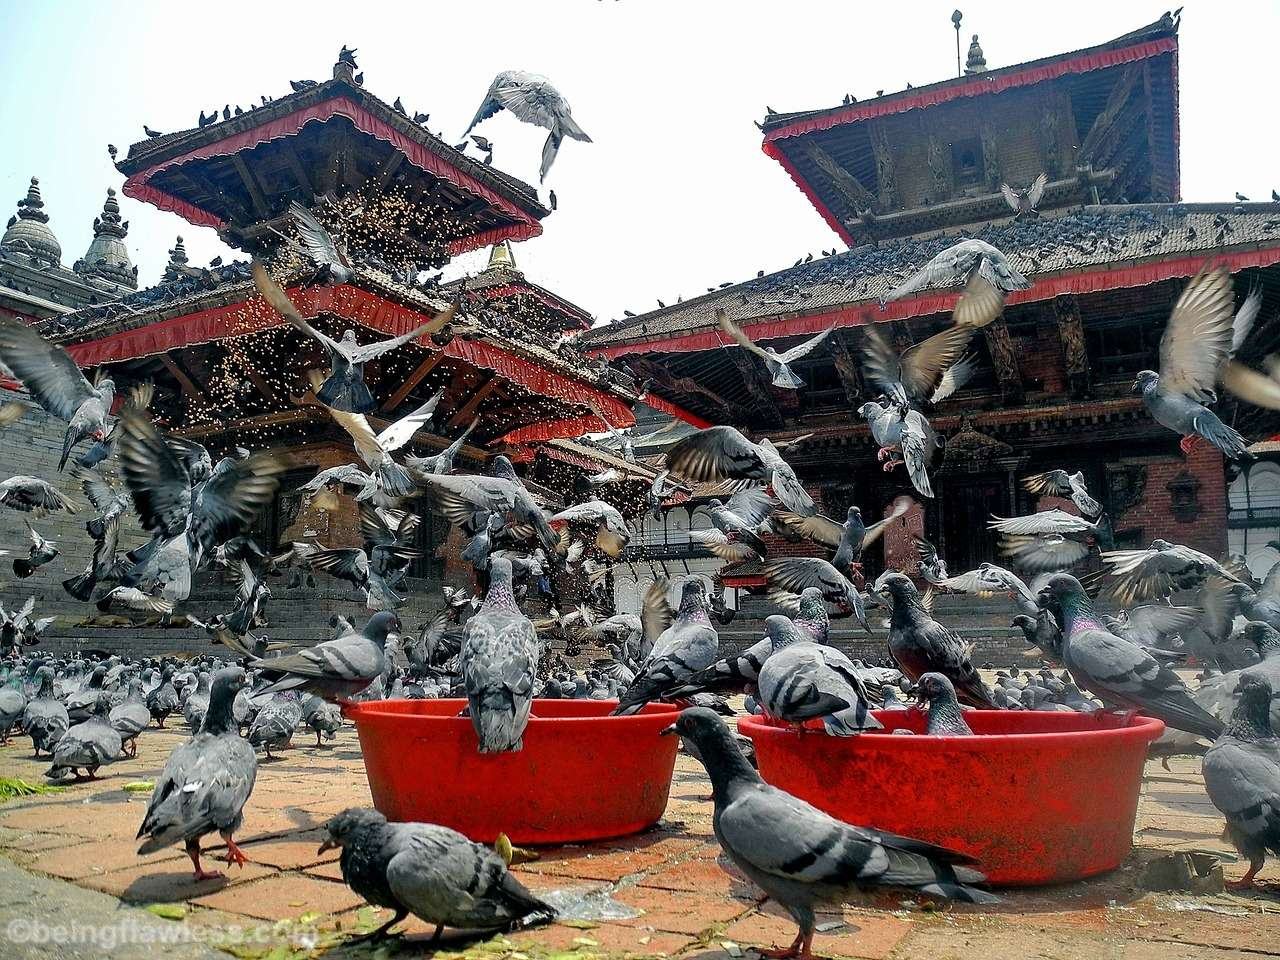 kathmandu 96564 1280 - 3 Most Exciting, Exotic and Diverse Countries of Asia